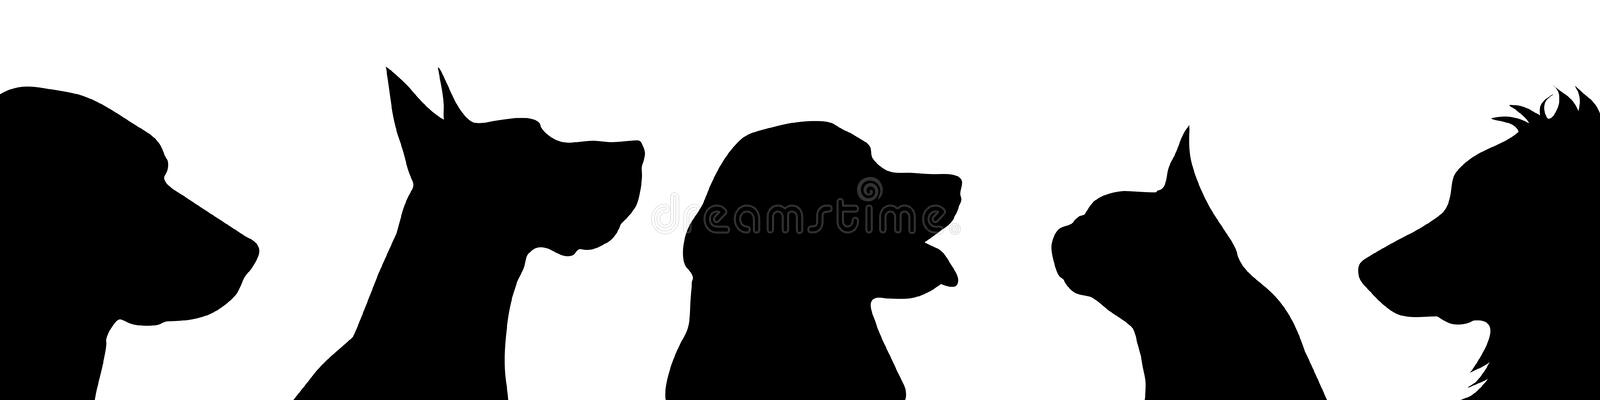 Hundsymbol stock illustrationer